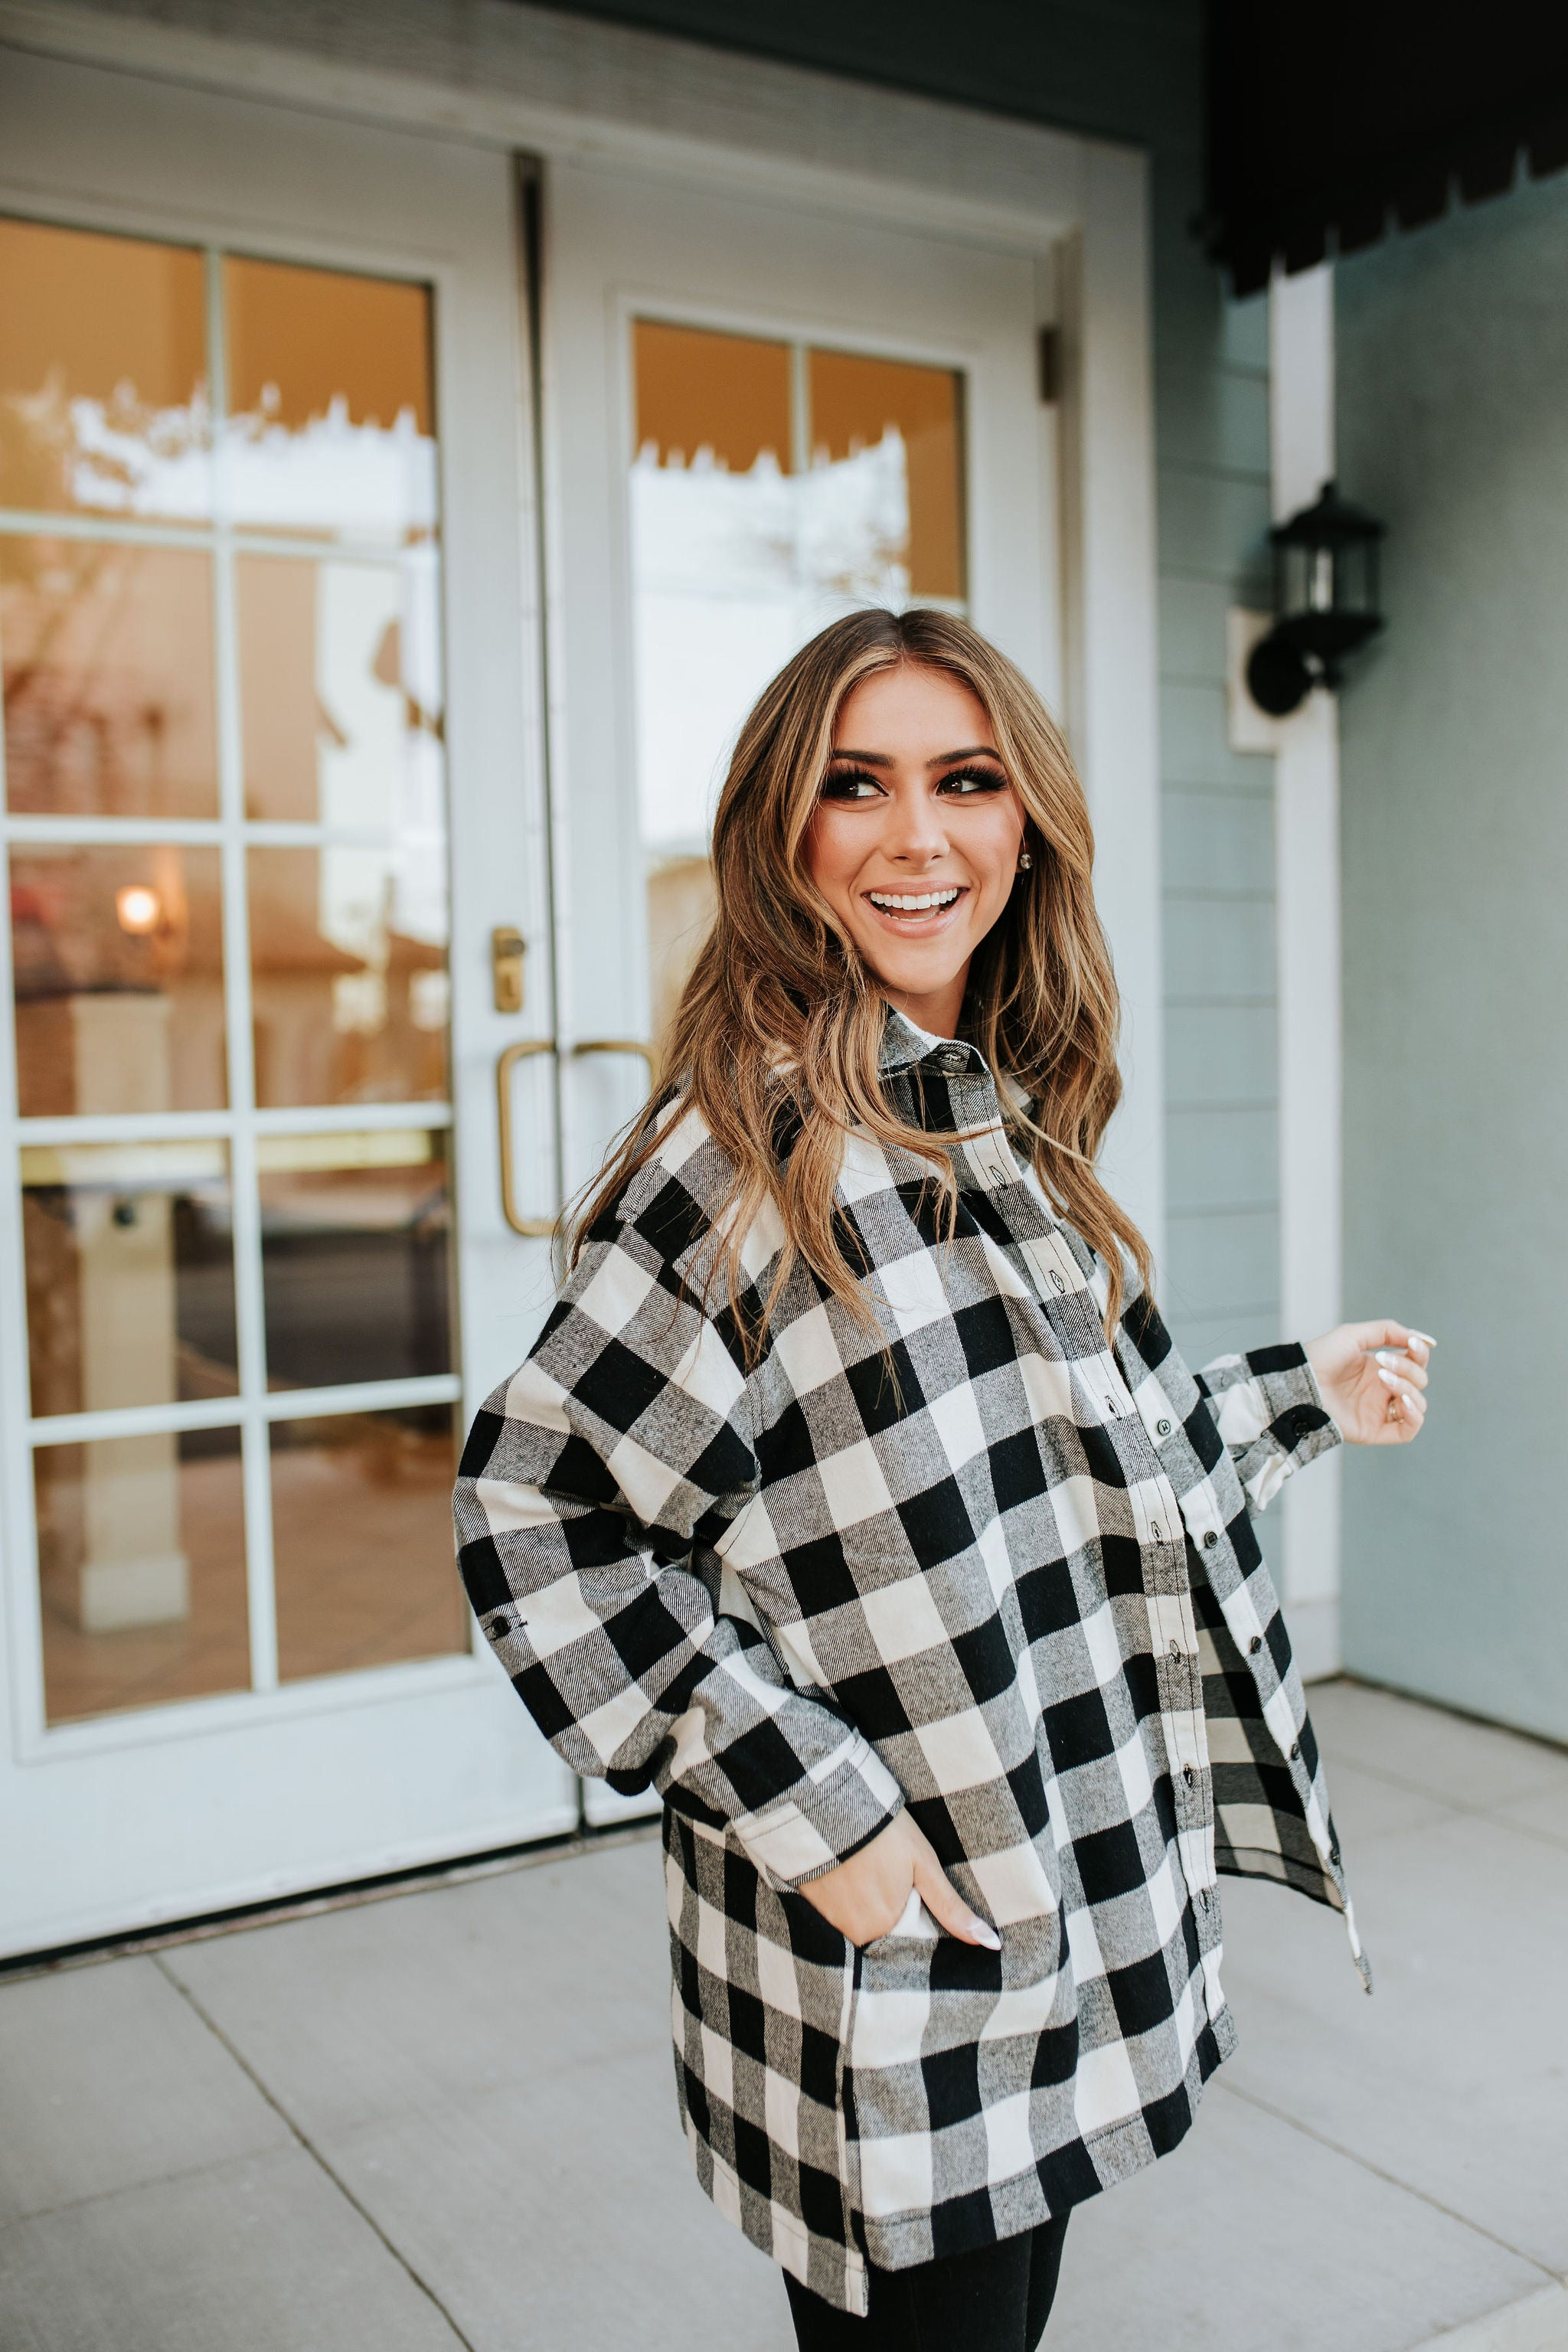 THE BECKETT FLANNEL TOP IN BLACK AND WHITE